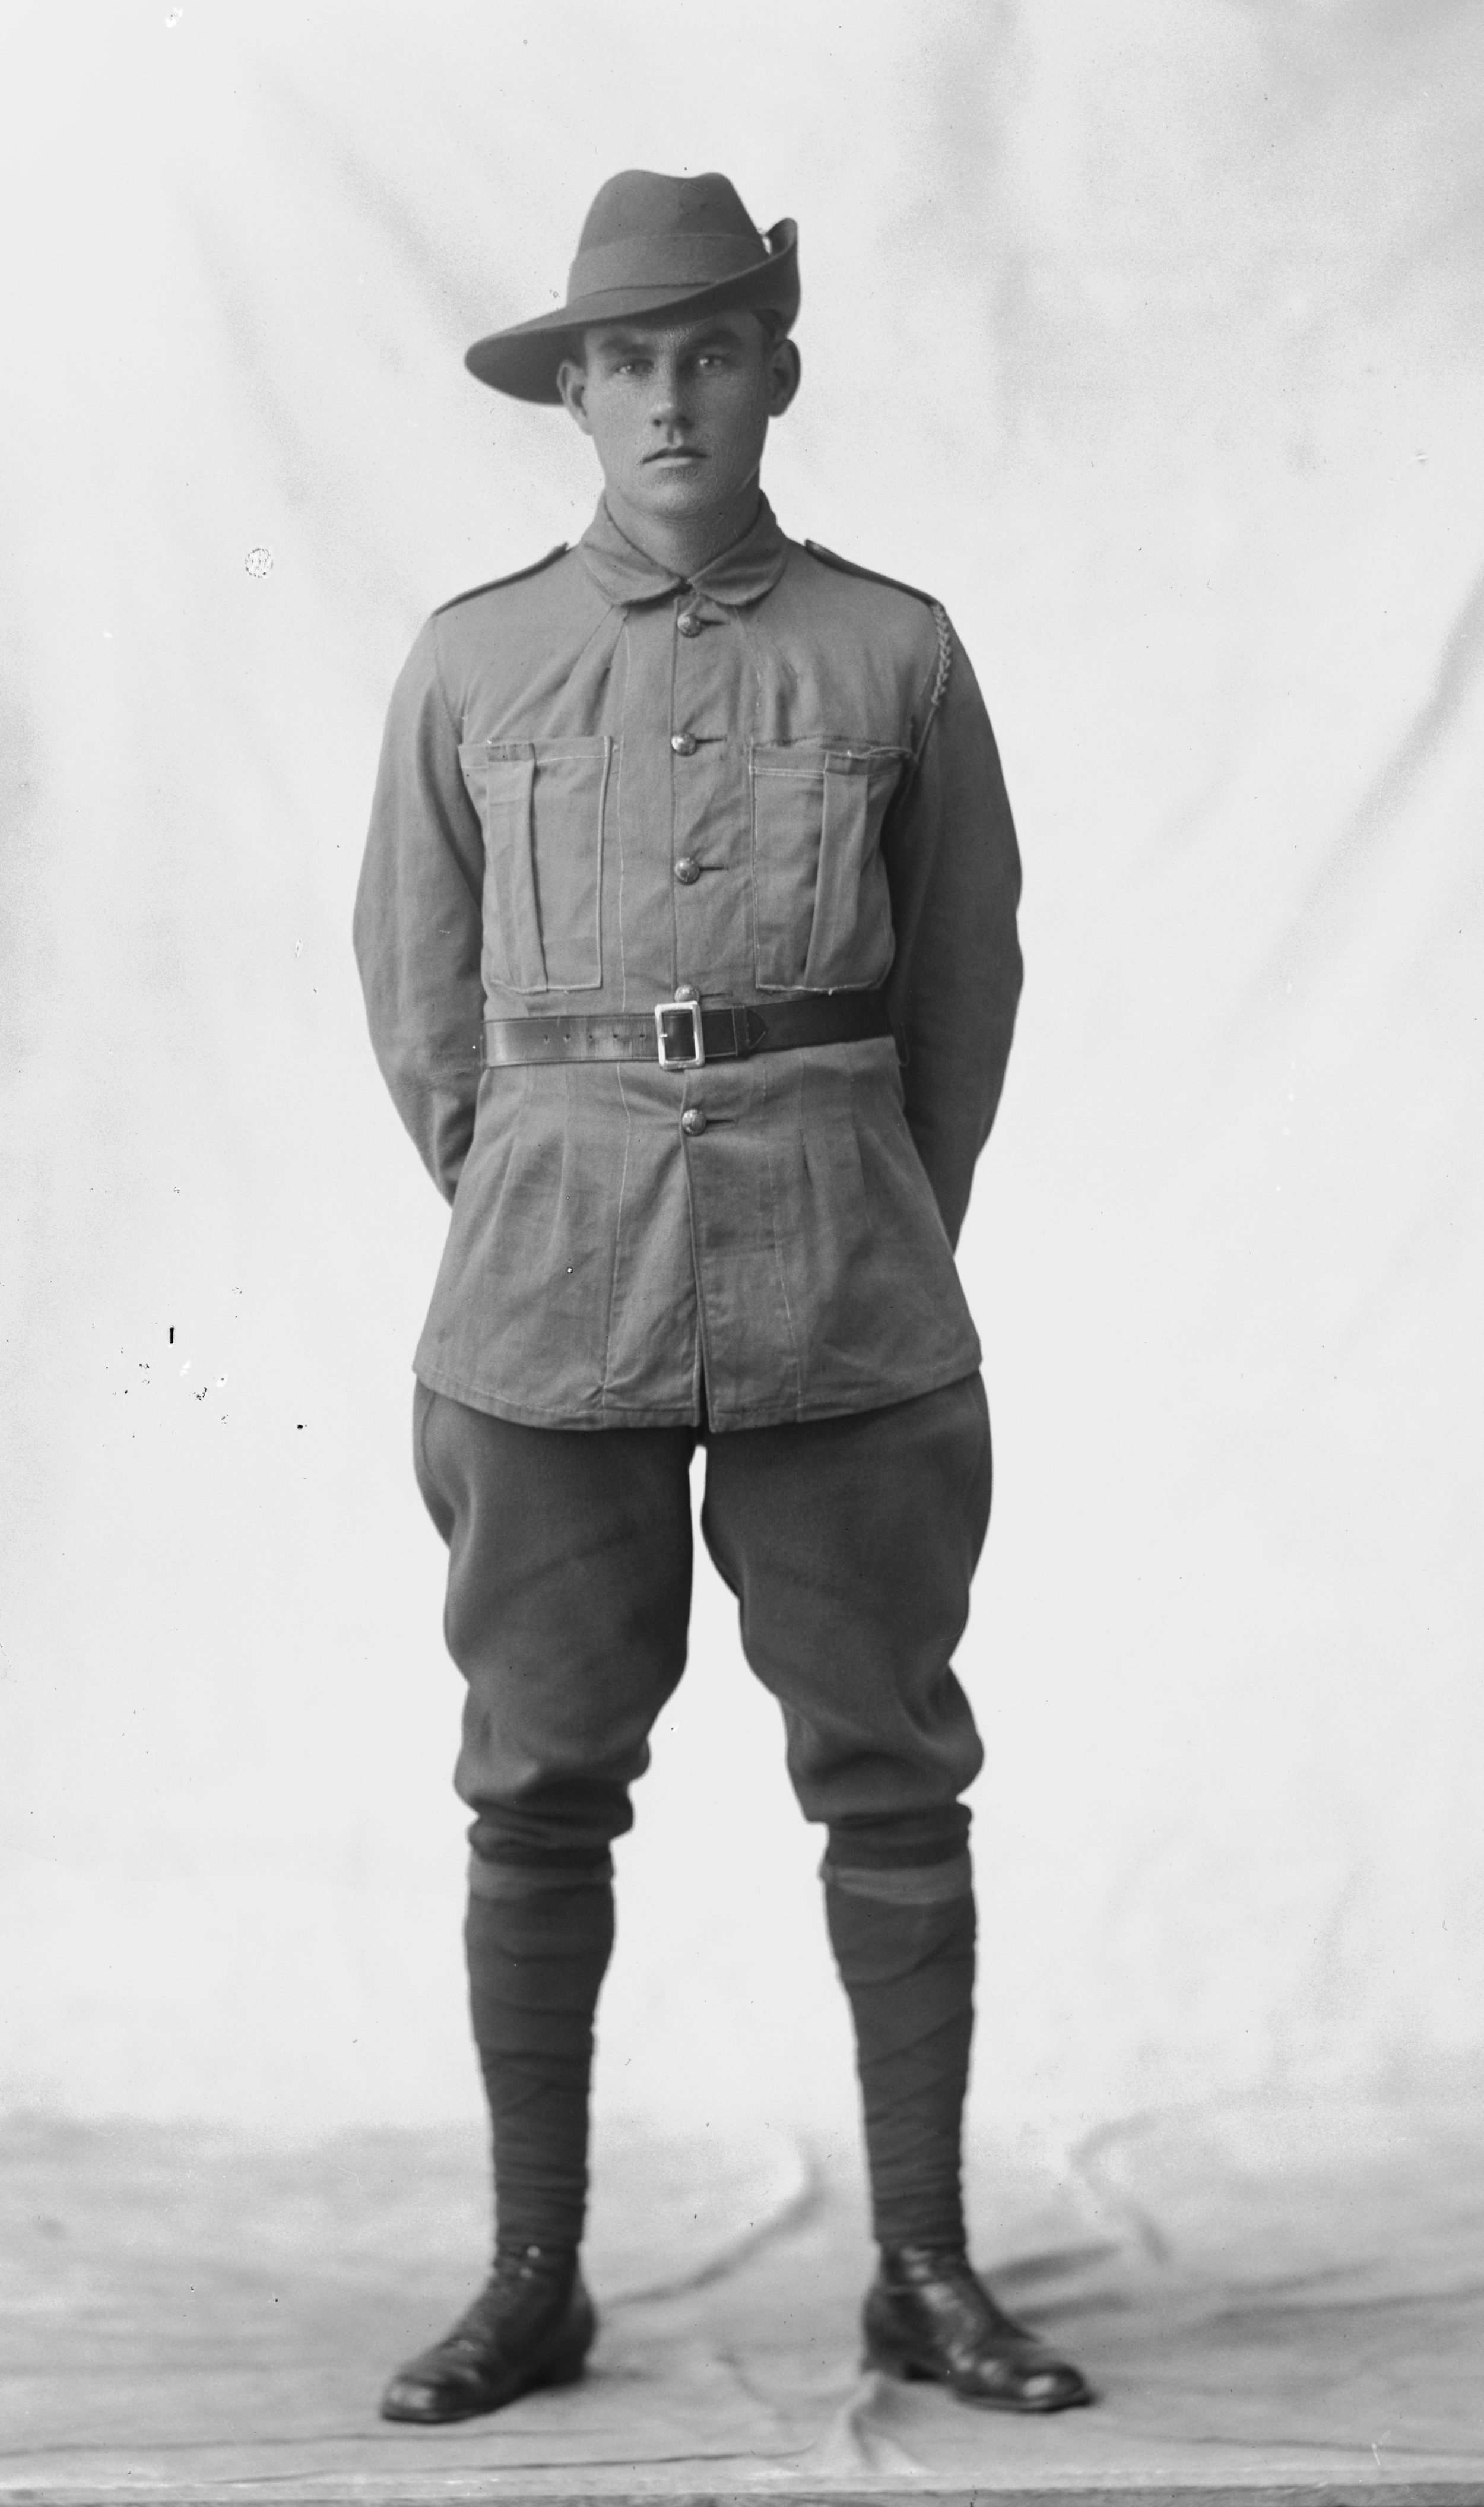 Photographed at the Dease Studio, 117 Barrack Street Perth WA Image courtesy of the State Library of Western Australia: 108664PD